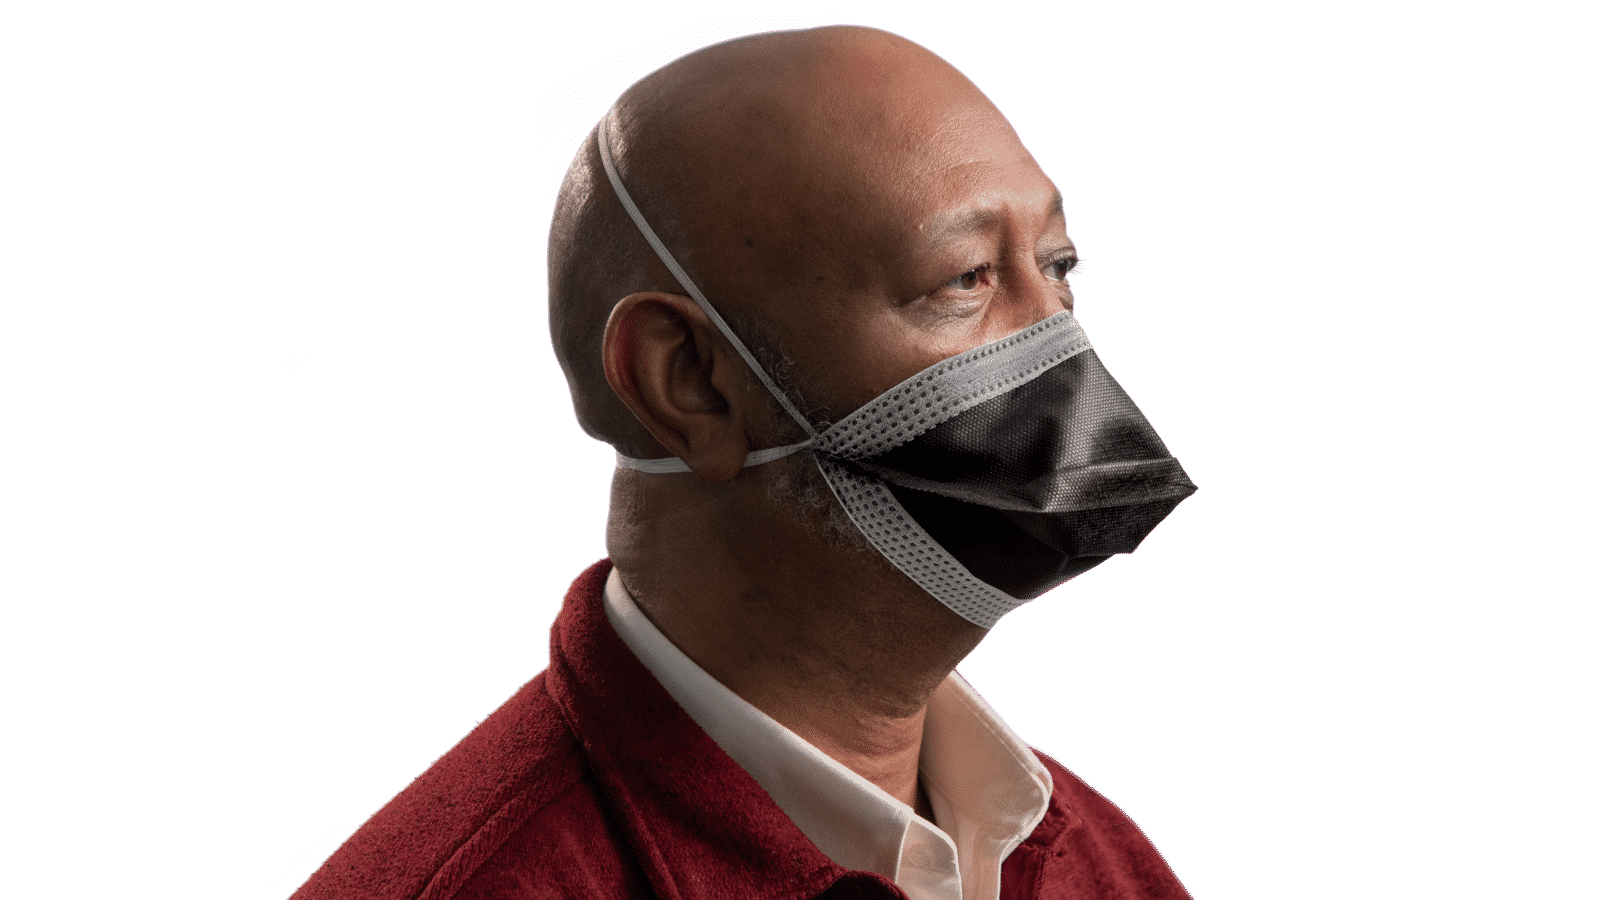 Man wearing blox98 sport face mask made in the usa